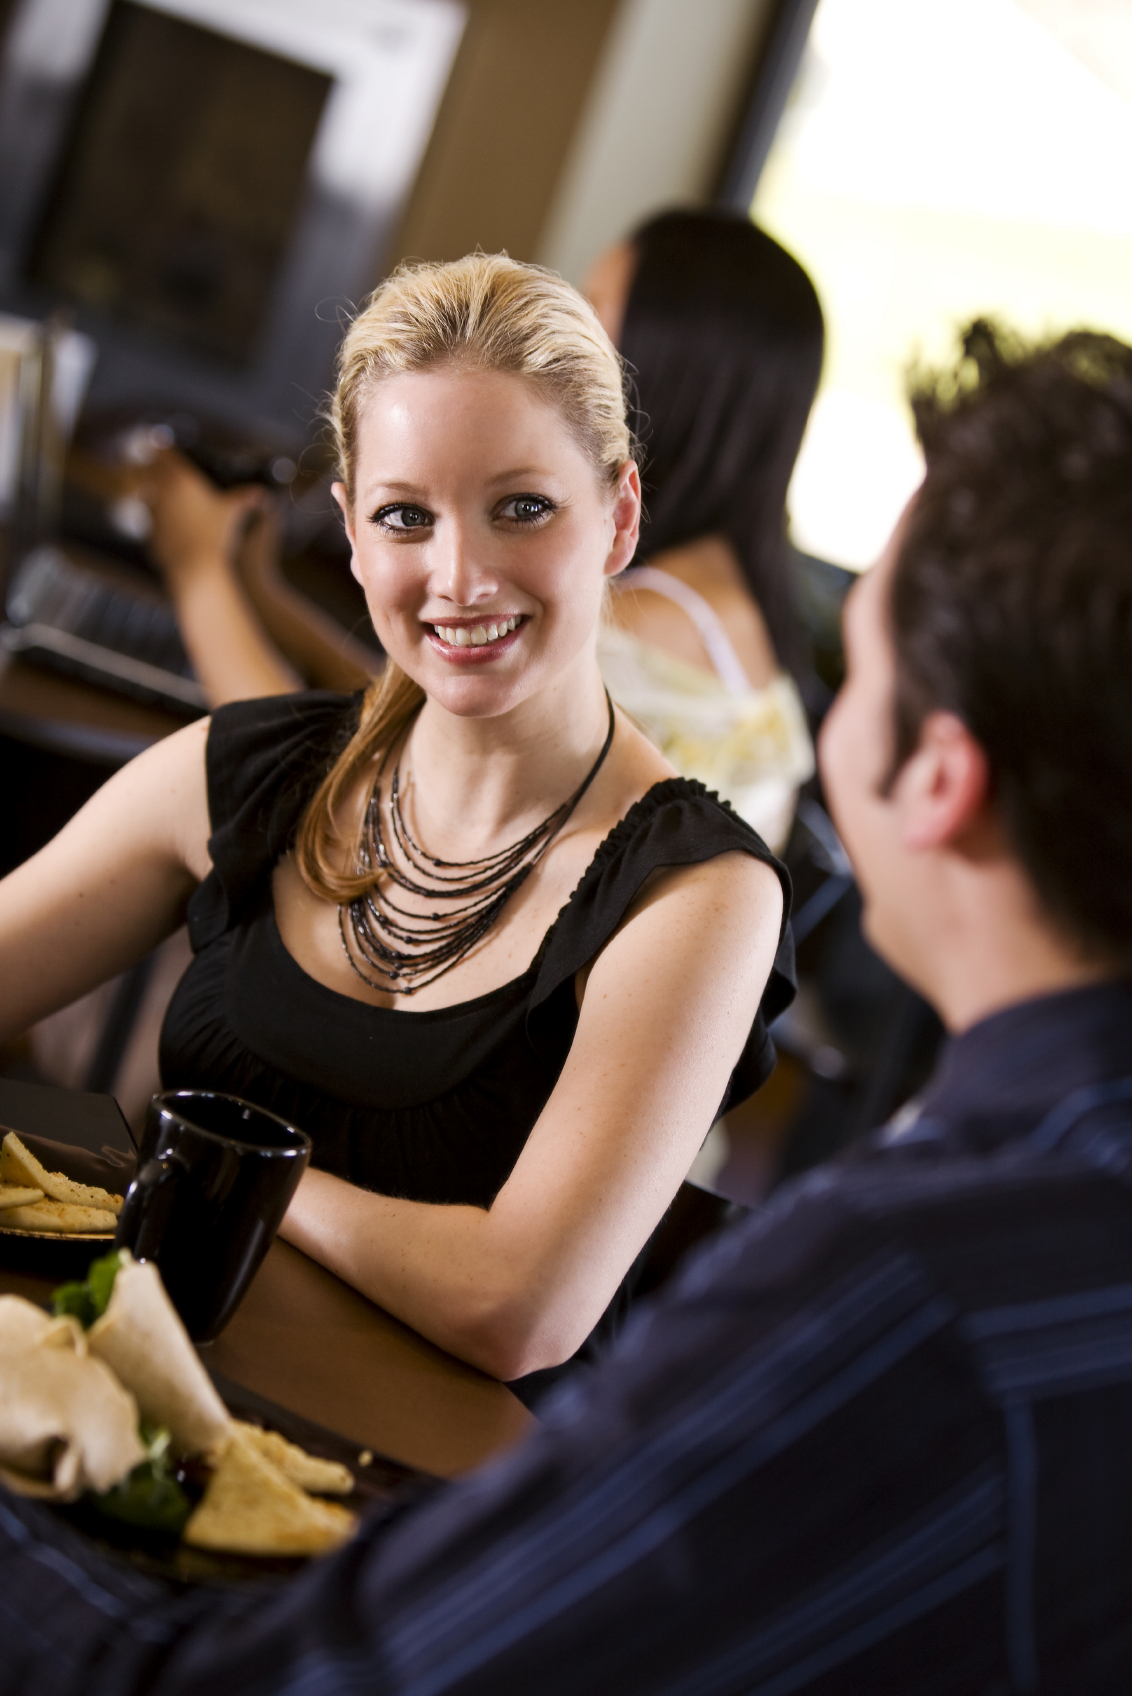 SparkLife » How to Go on a First Date